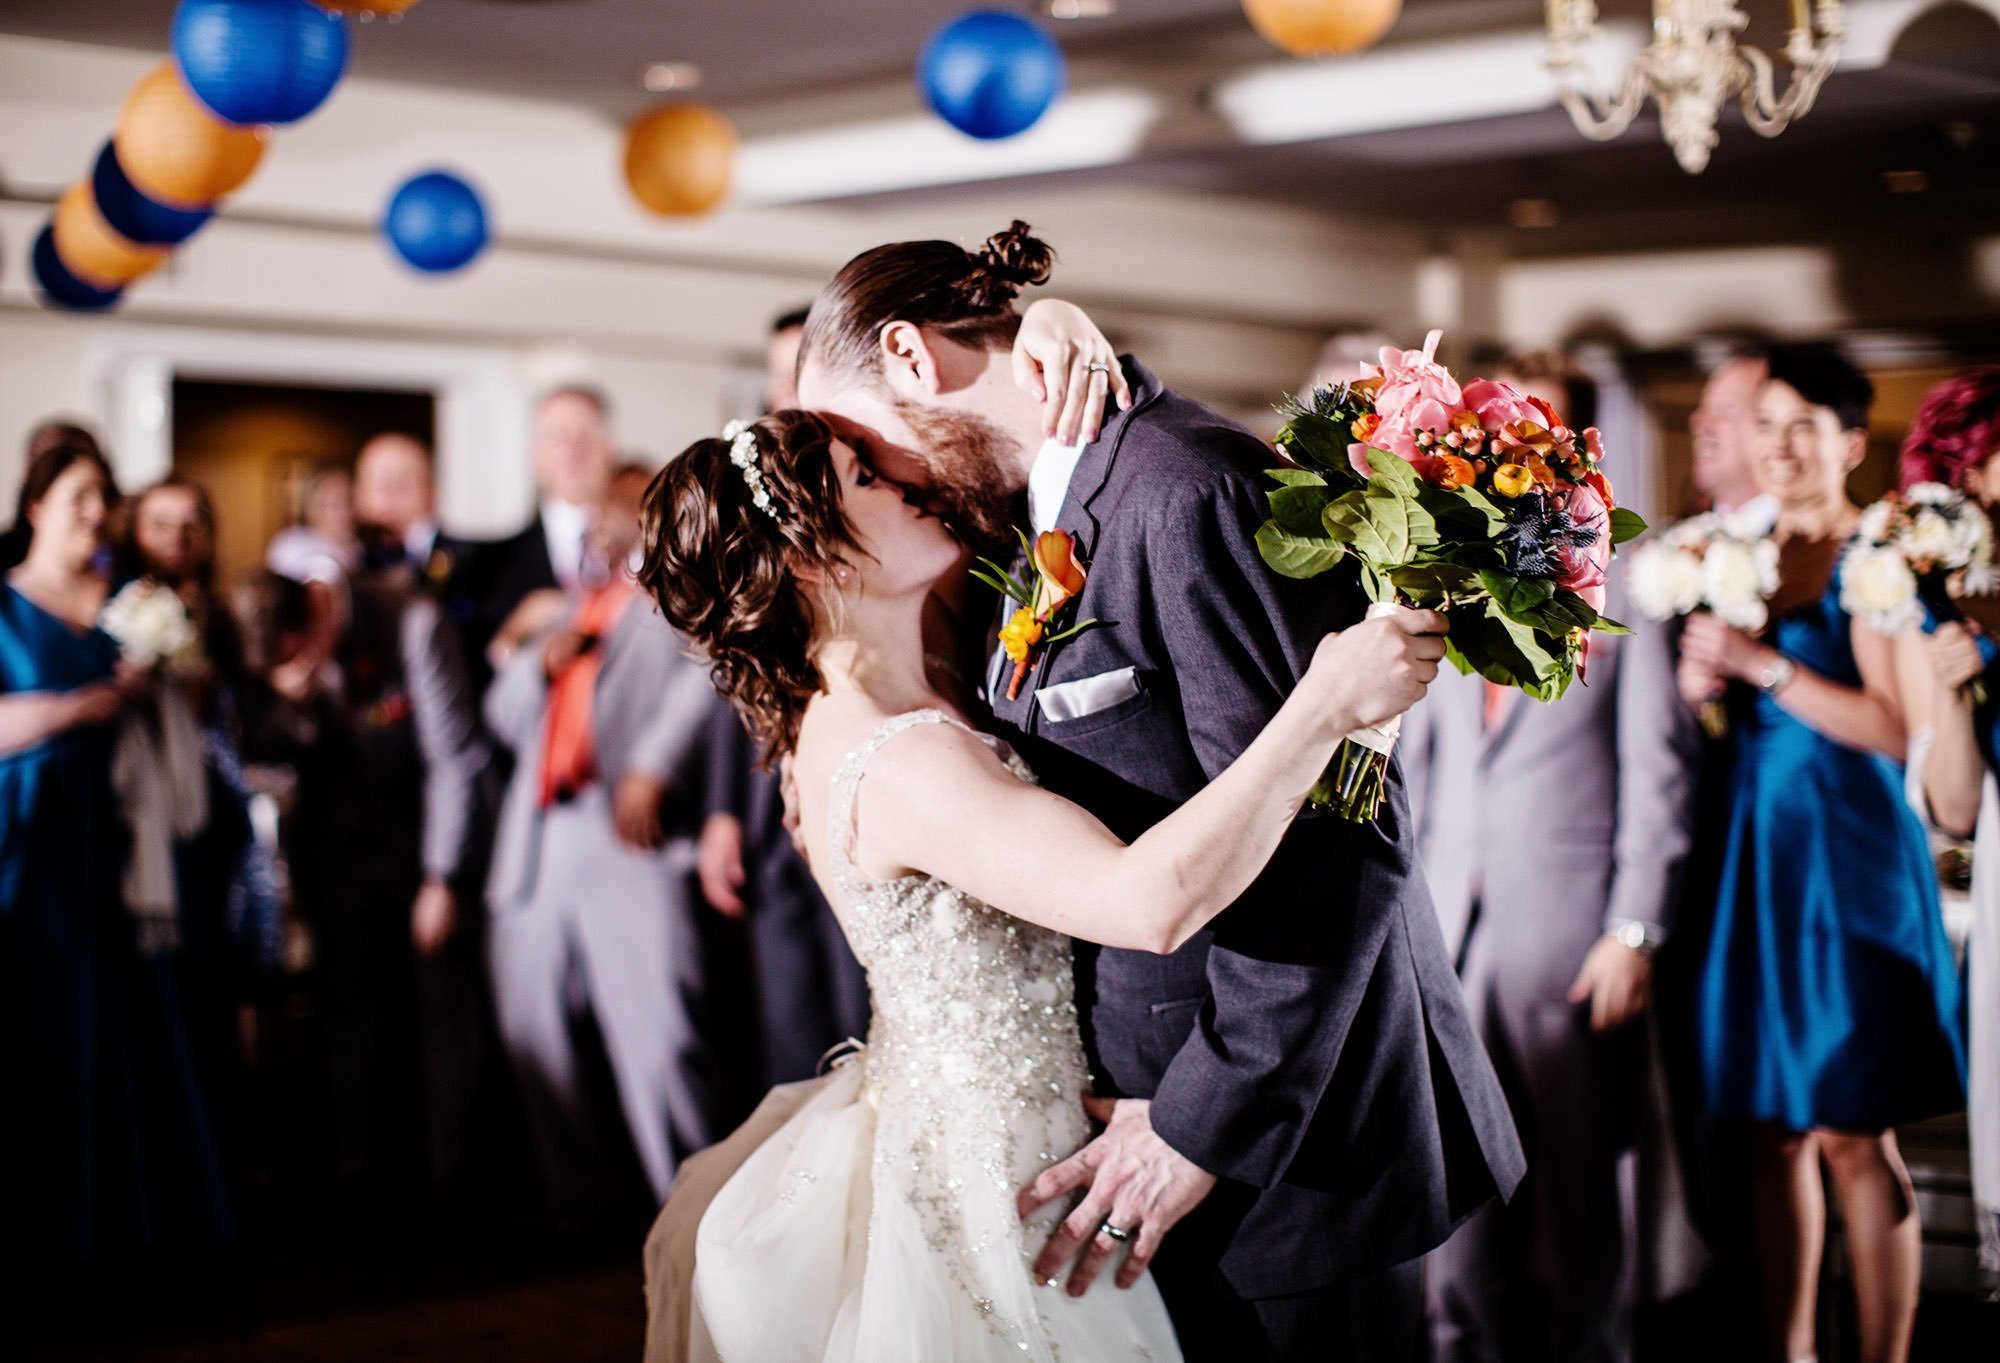 The bride and groom share their first dance at The Oaks Waterfront Inn and Events Wedding, Royal Oak, MD